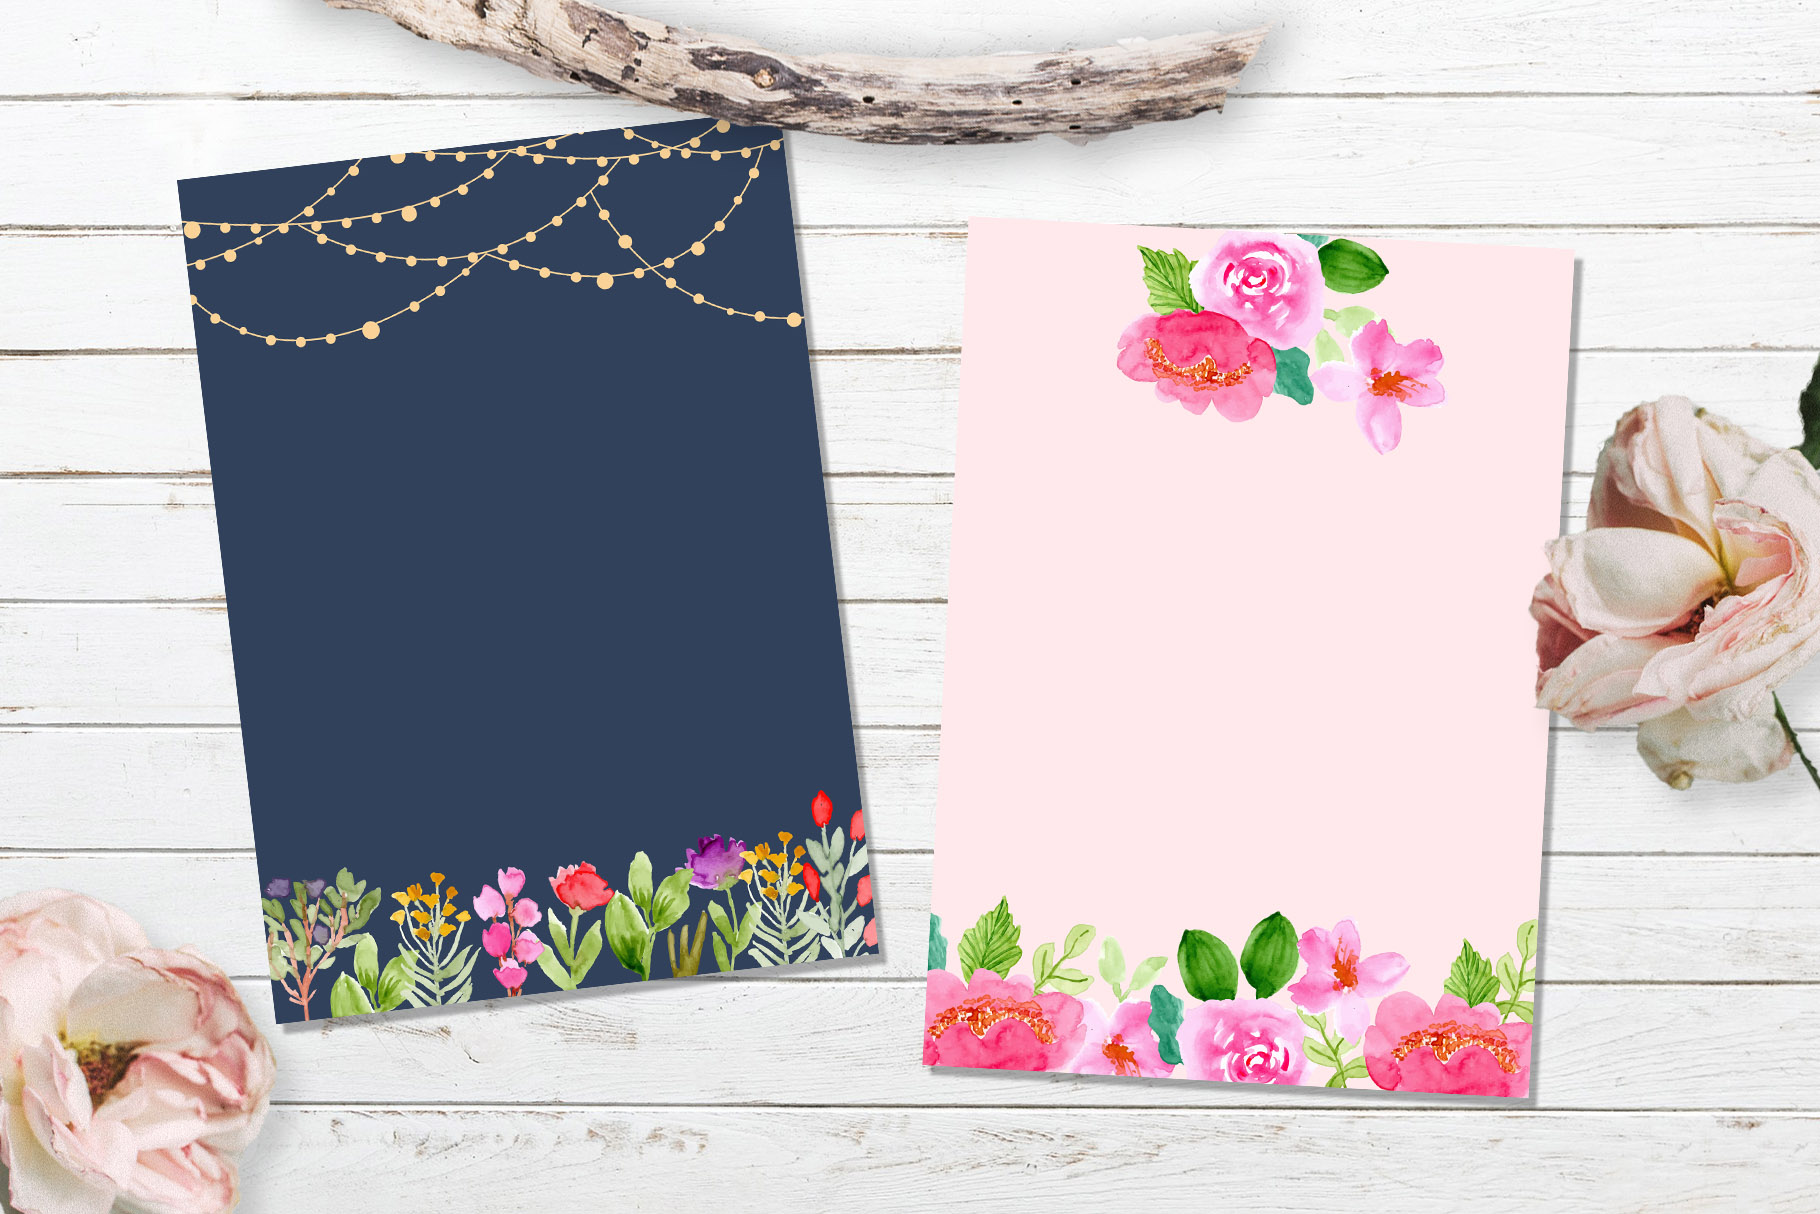 Floral Invitation Backgrounds Vol.3 example image 6